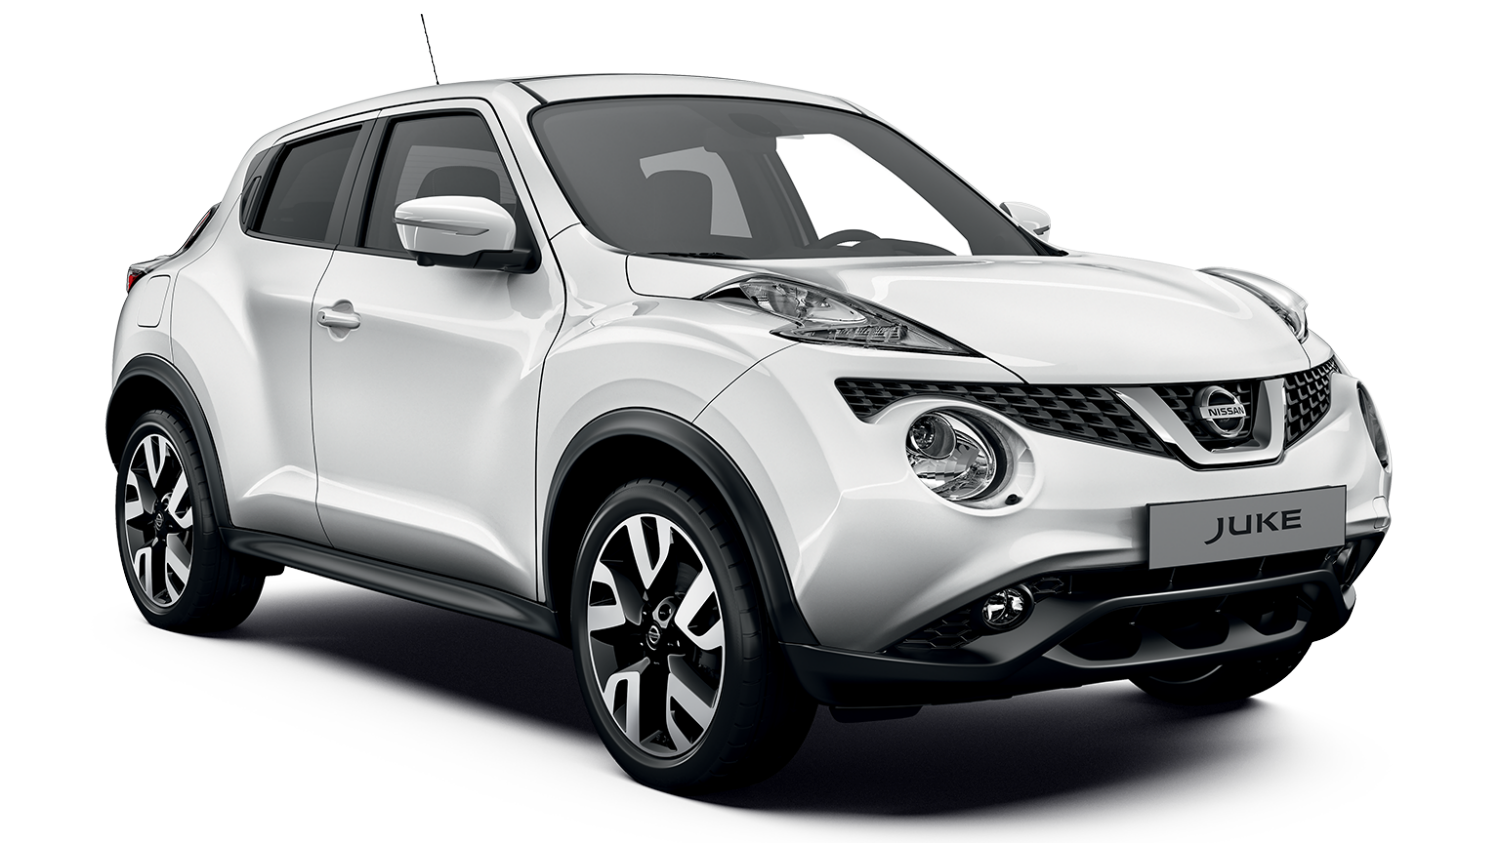 prijzen en uitvoeringen nissan juke crossover nissan. Black Bedroom Furniture Sets. Home Design Ideas